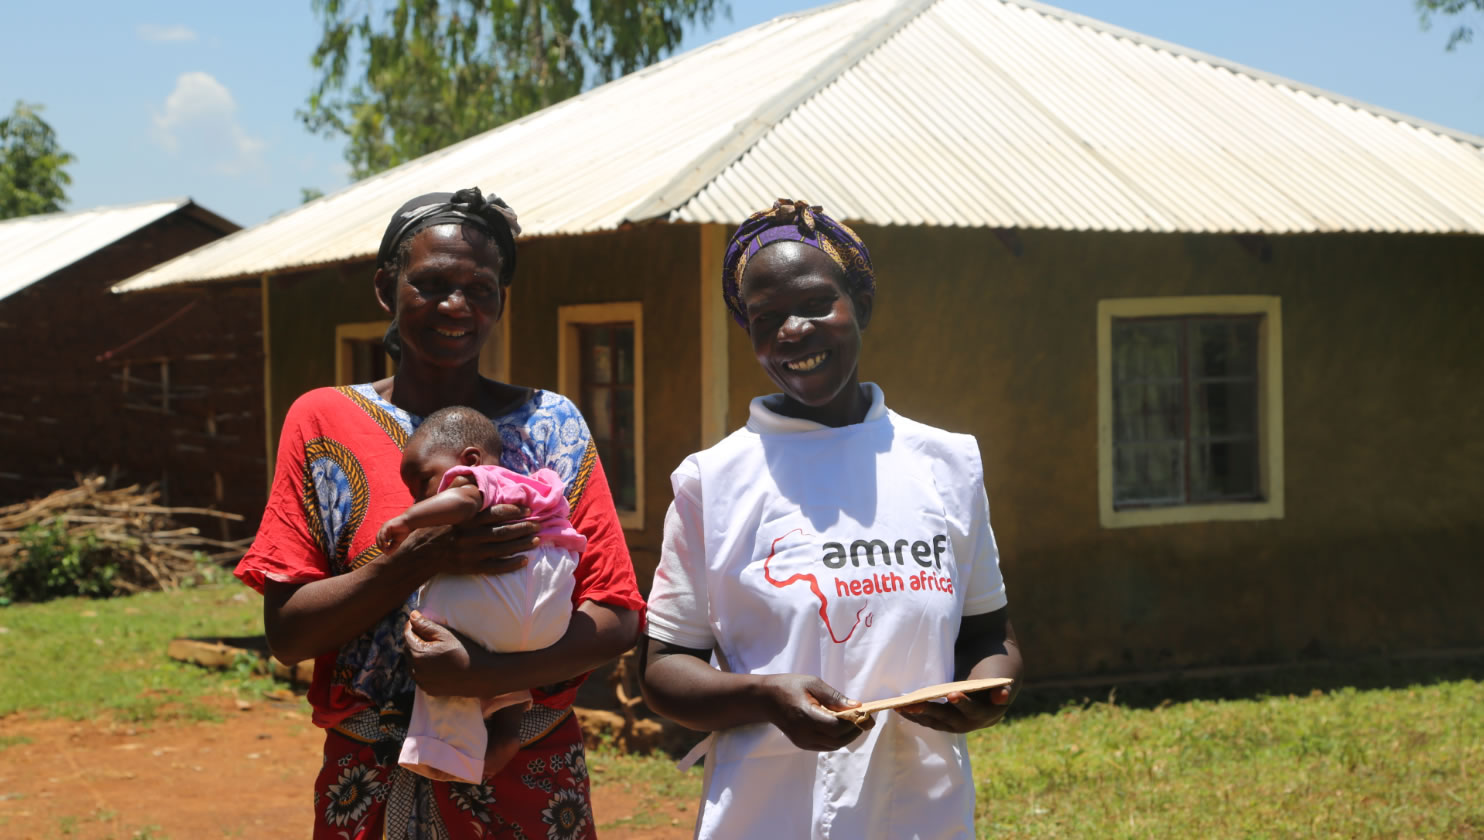 amref health africa position statement on community health workers